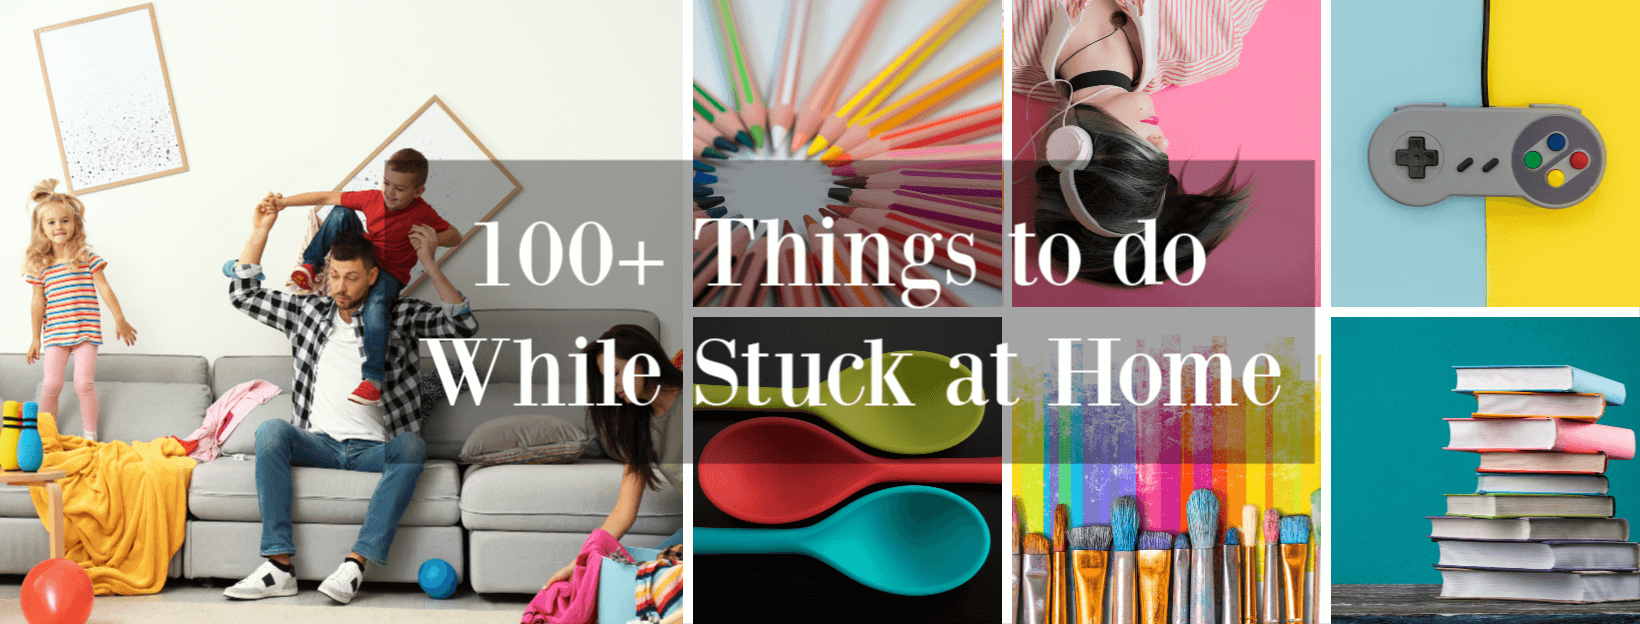 100+ Things to do While Stuck at Home